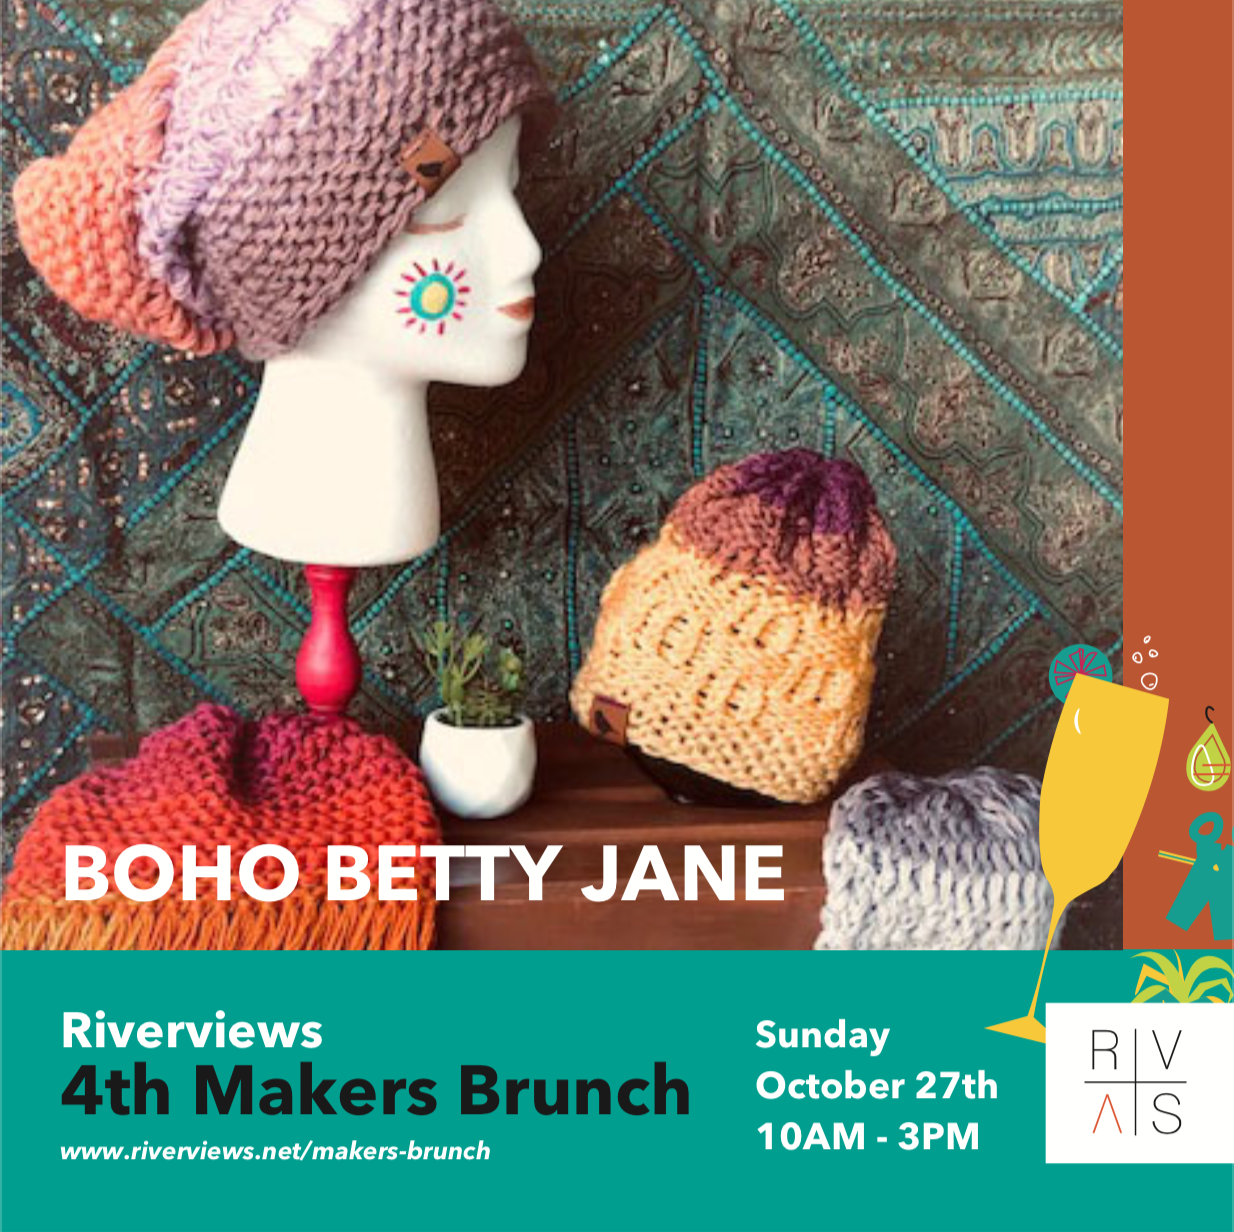 2019MakersBrunch_IG_Boho Betty Jane.png